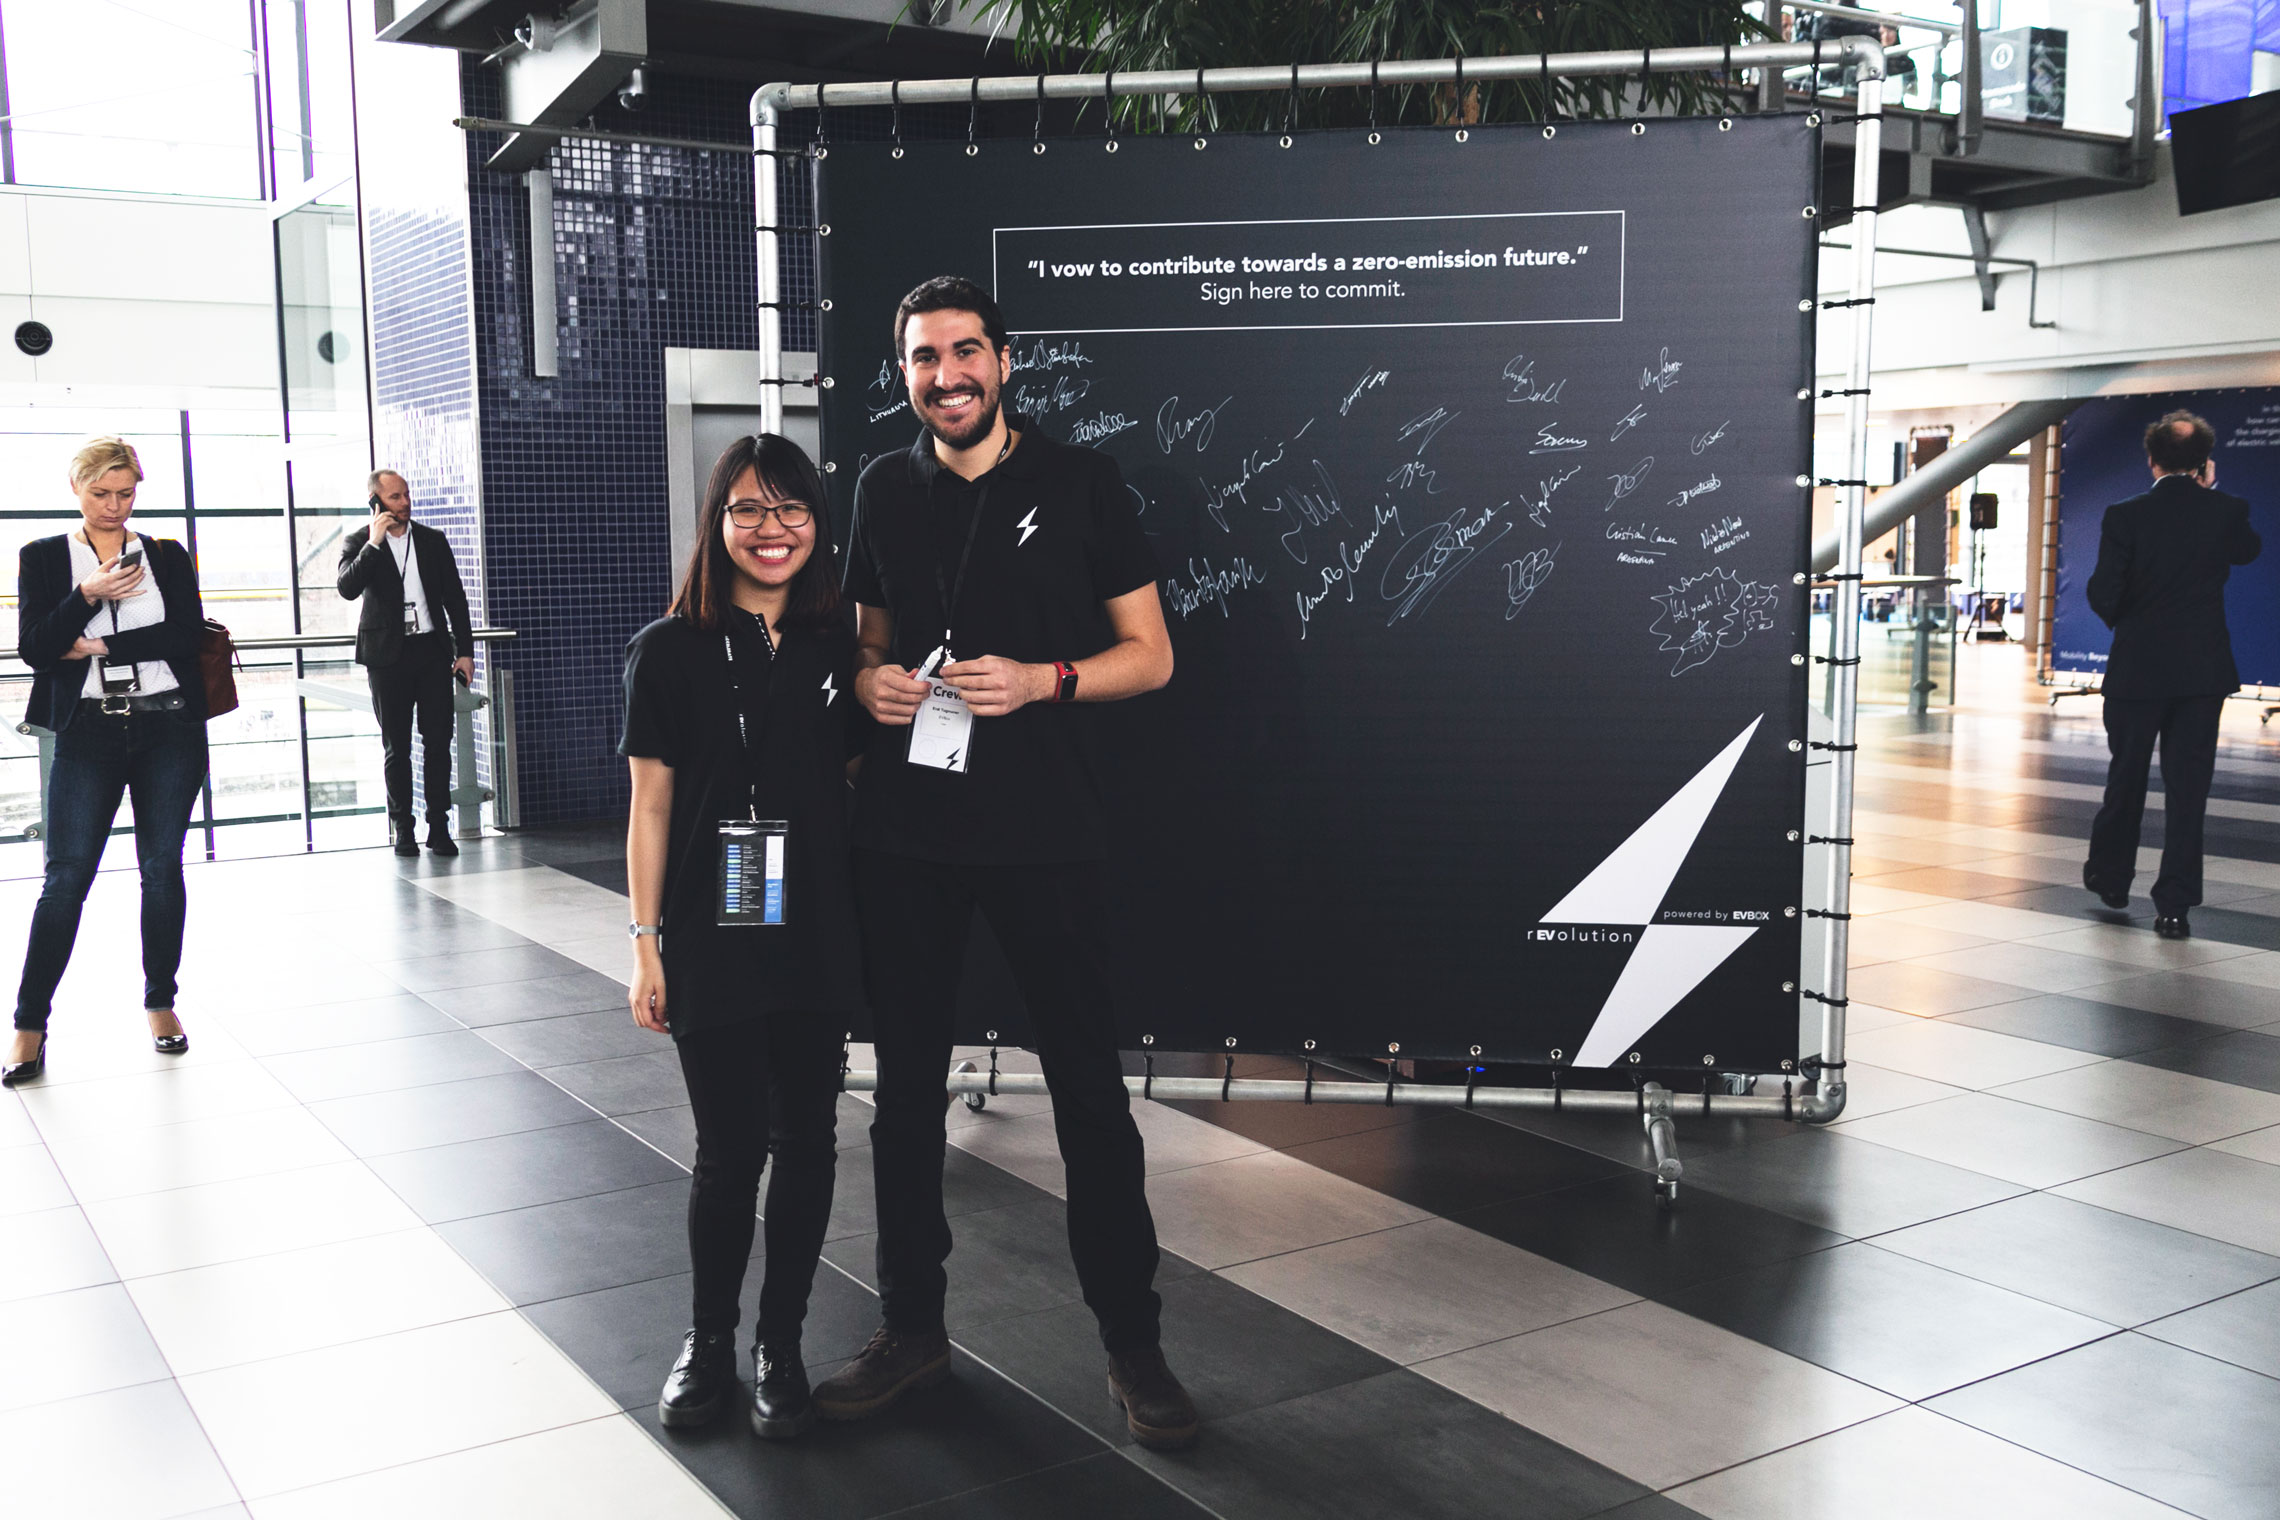 Volunteers at rEVolution 2018 electric mobility conference